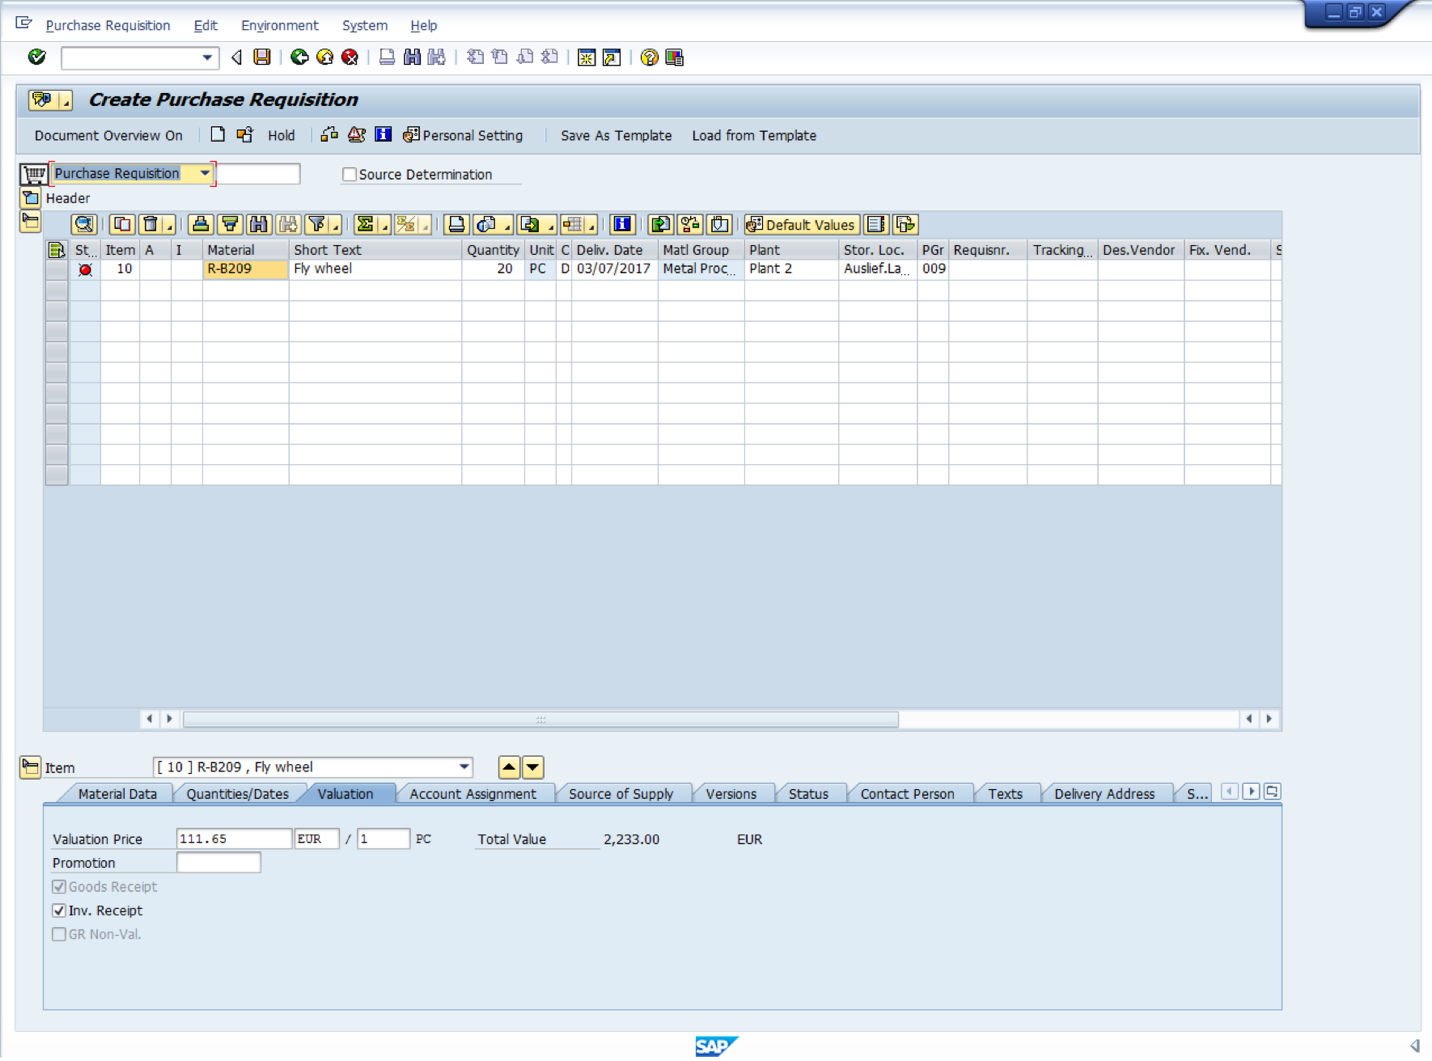 SAP Purchase Requisition with Material Master Record